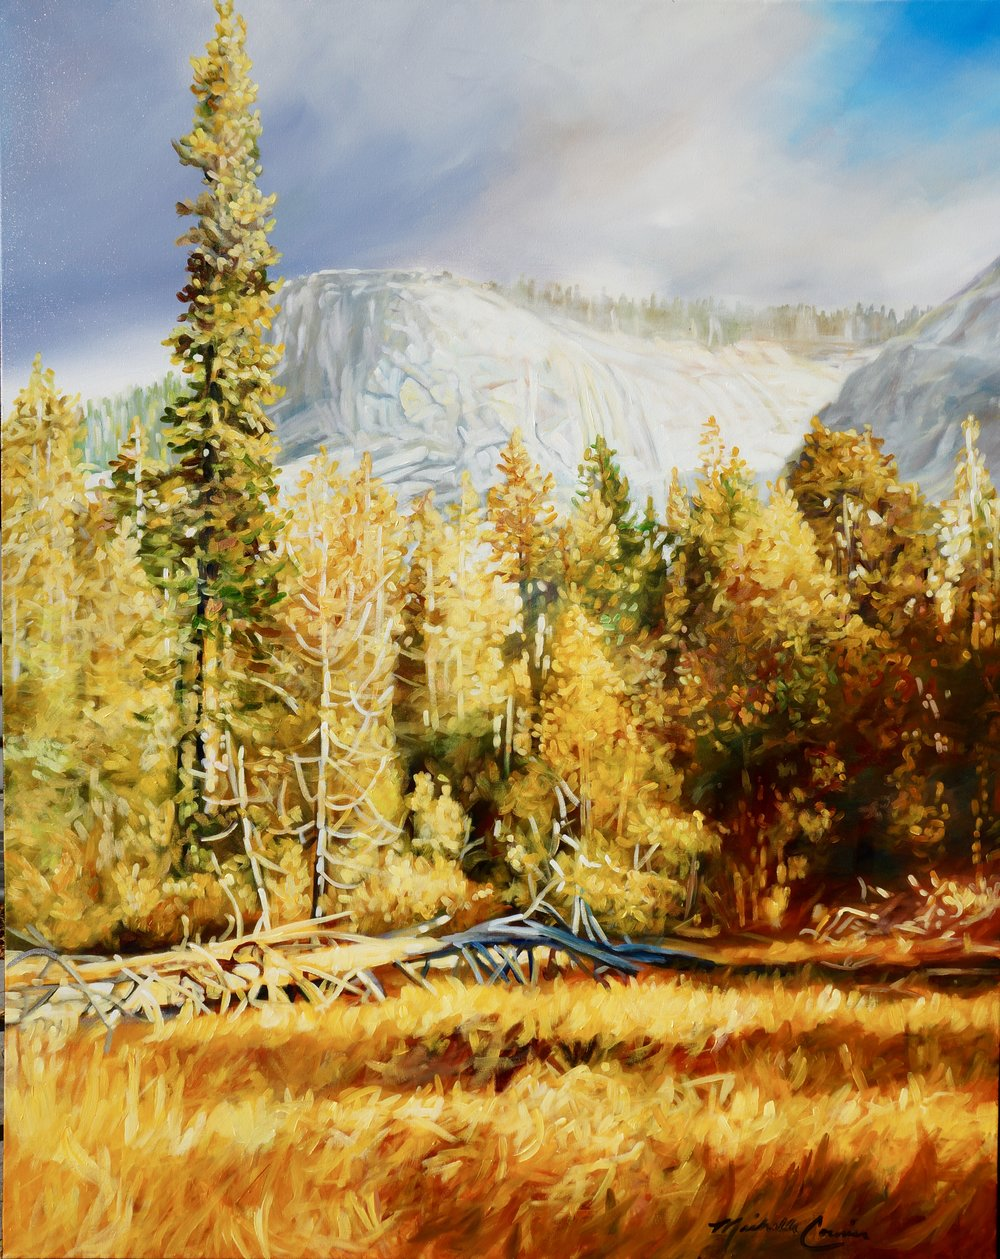 TUOLUMNE MEADOWS 48x60 IN ACRYLIC ON CANVAS  PRINTS AVAILABLE IN VARIOUS SIZES ON PAPER/CANVAS